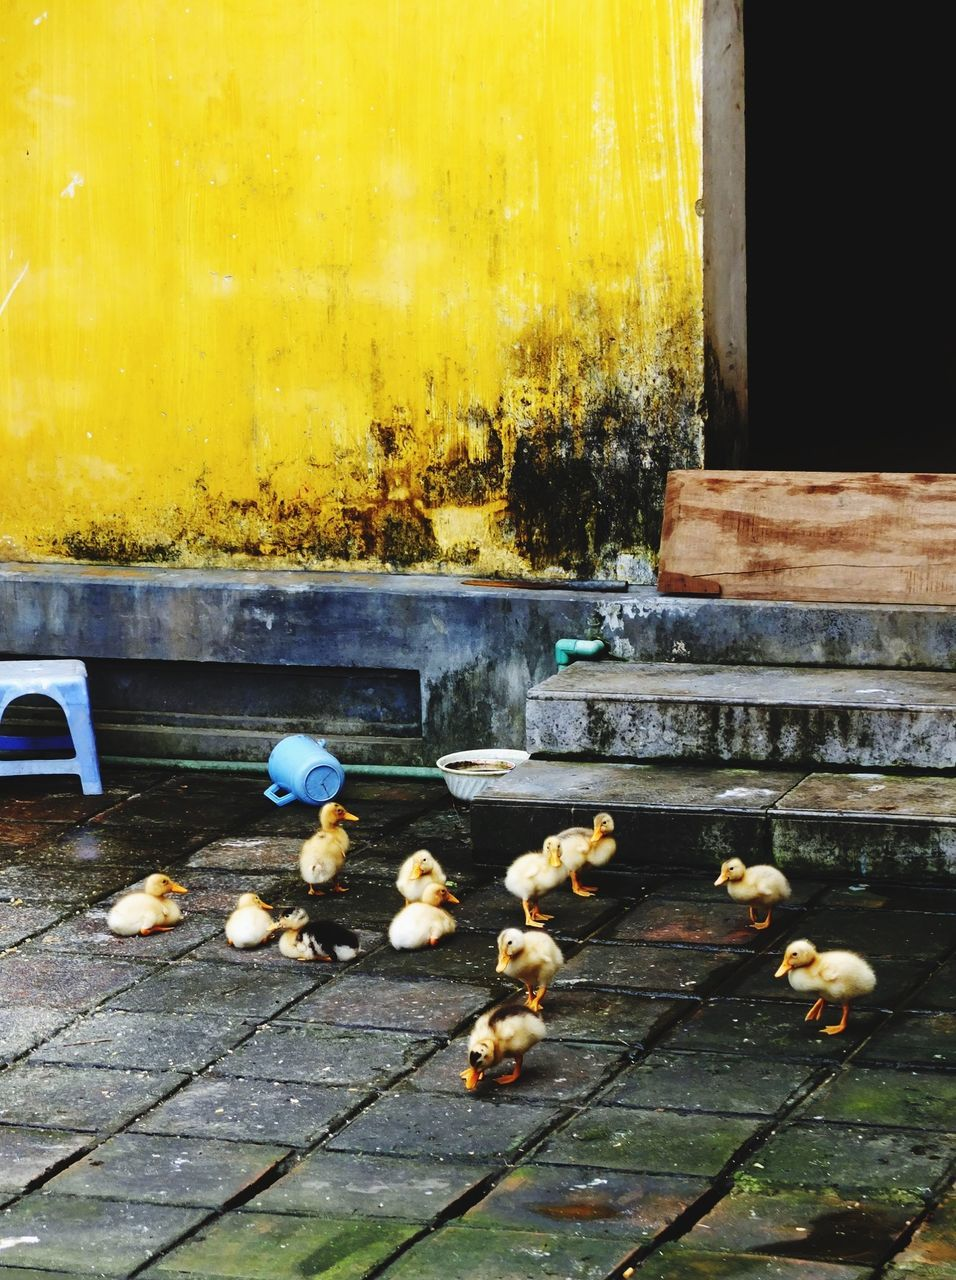 Young chickens on the ground against yellow wall